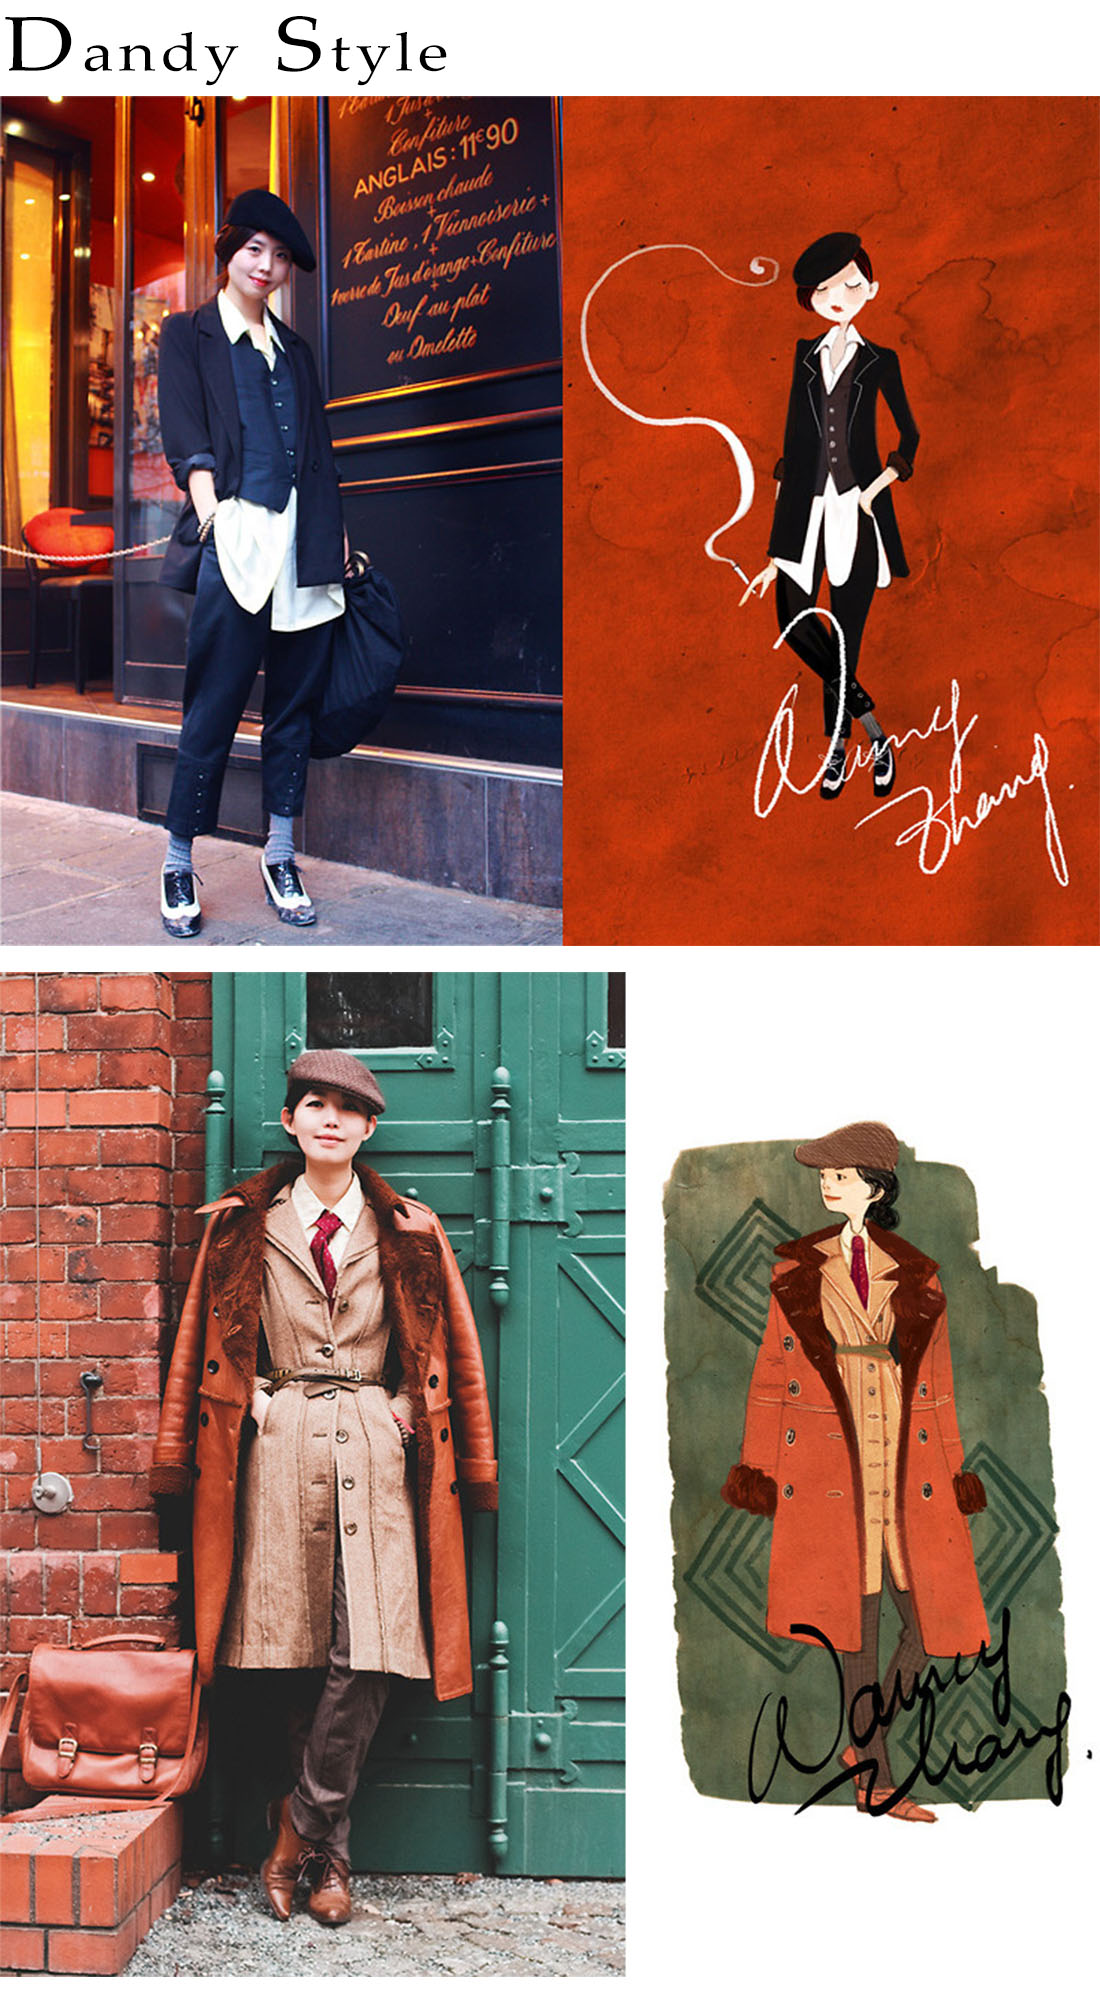 Fashion_Illustrations_Com_DandyStylel_02